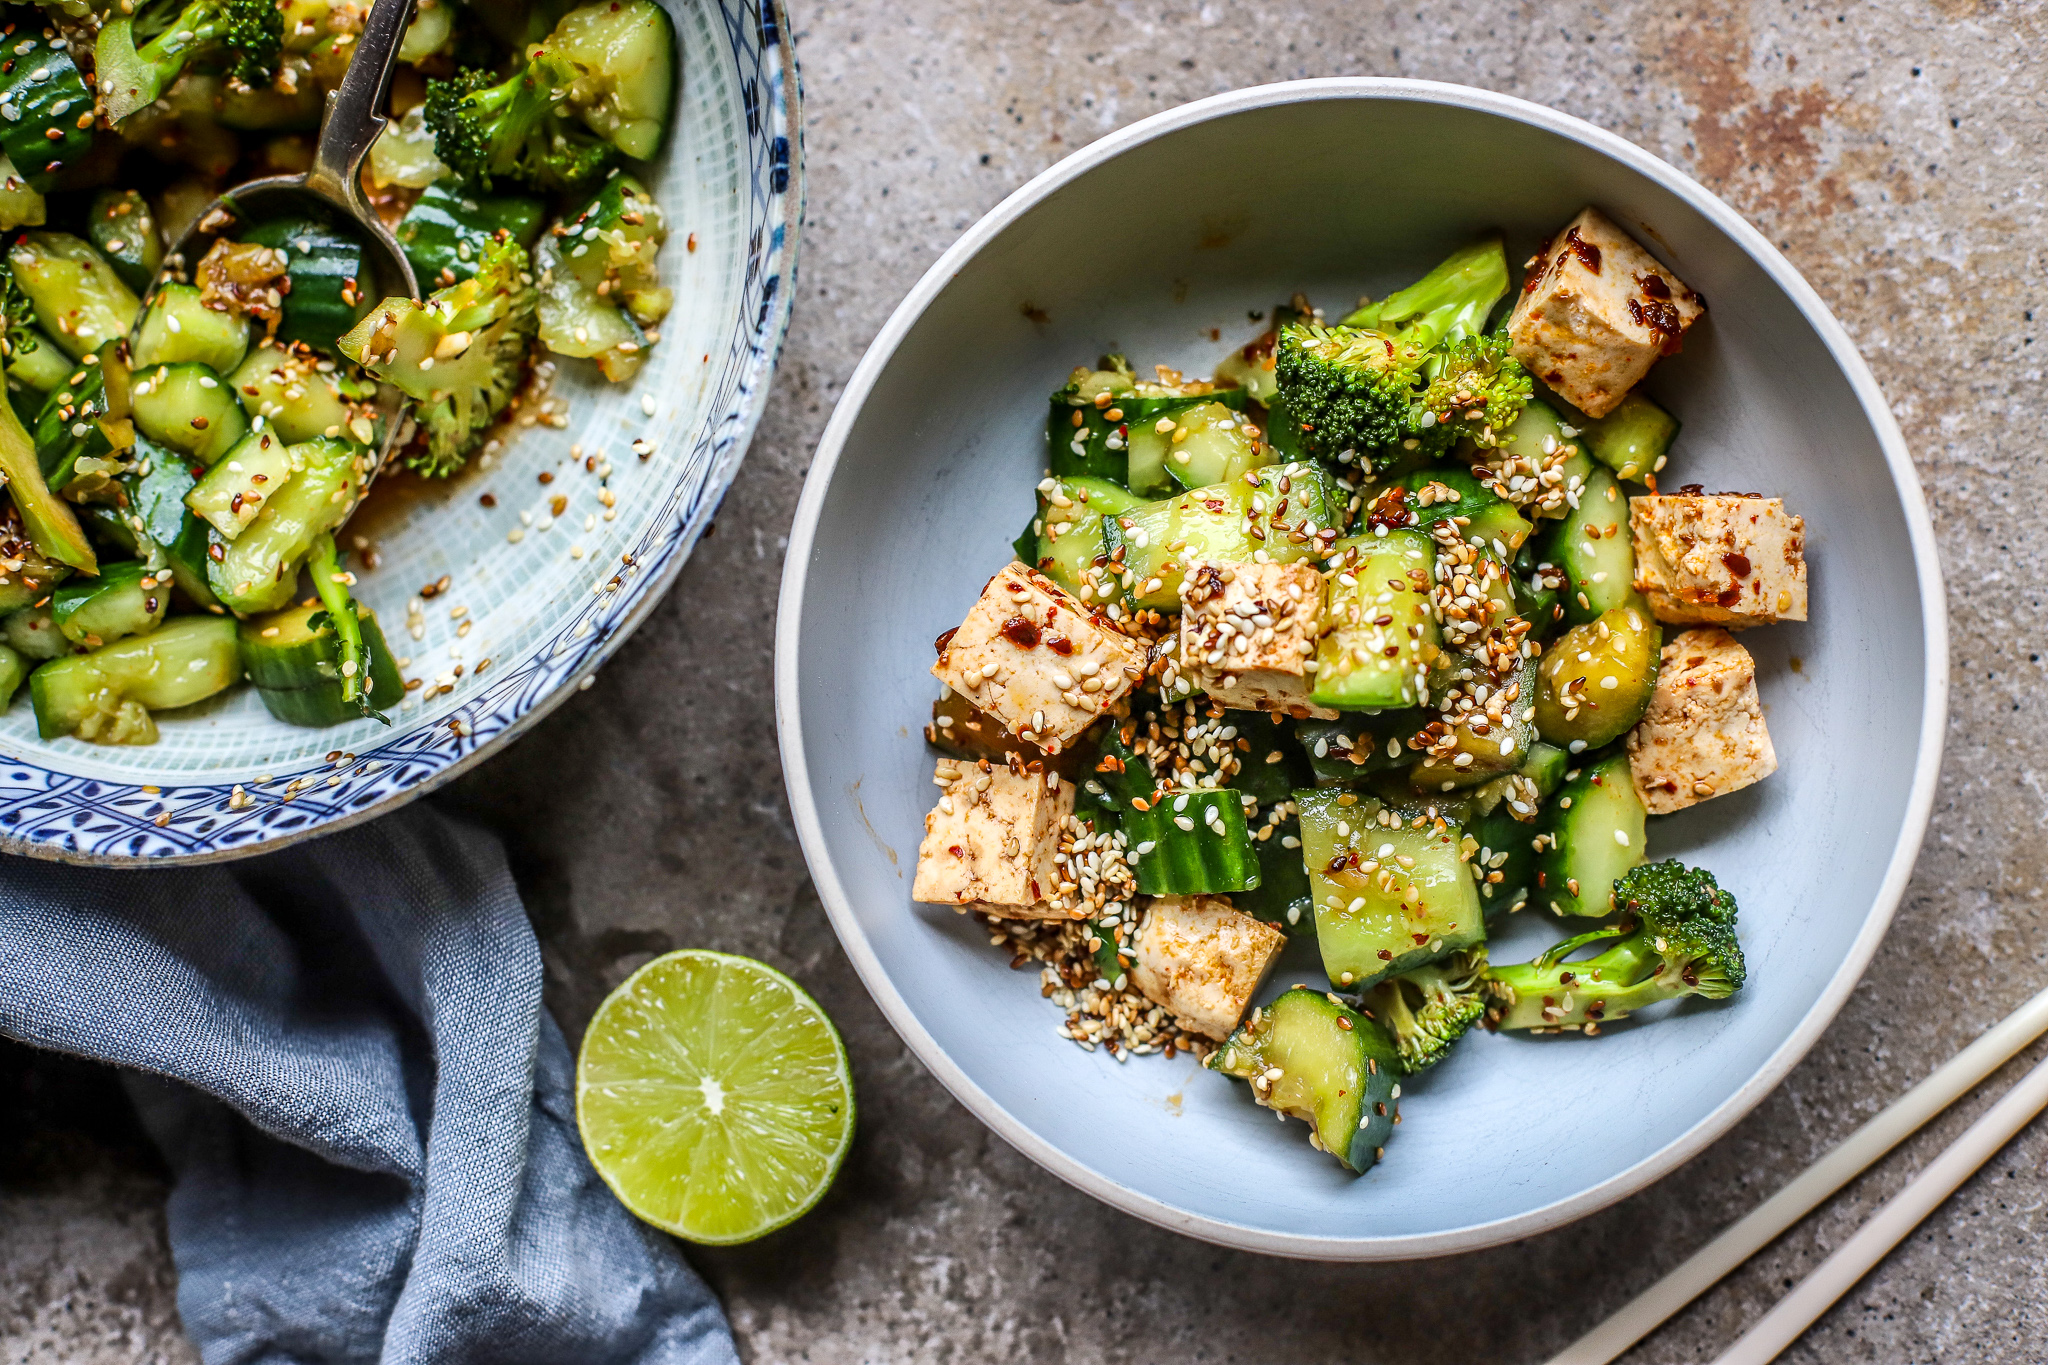 smashed cucumber salad in bowls with tofu on concrete background